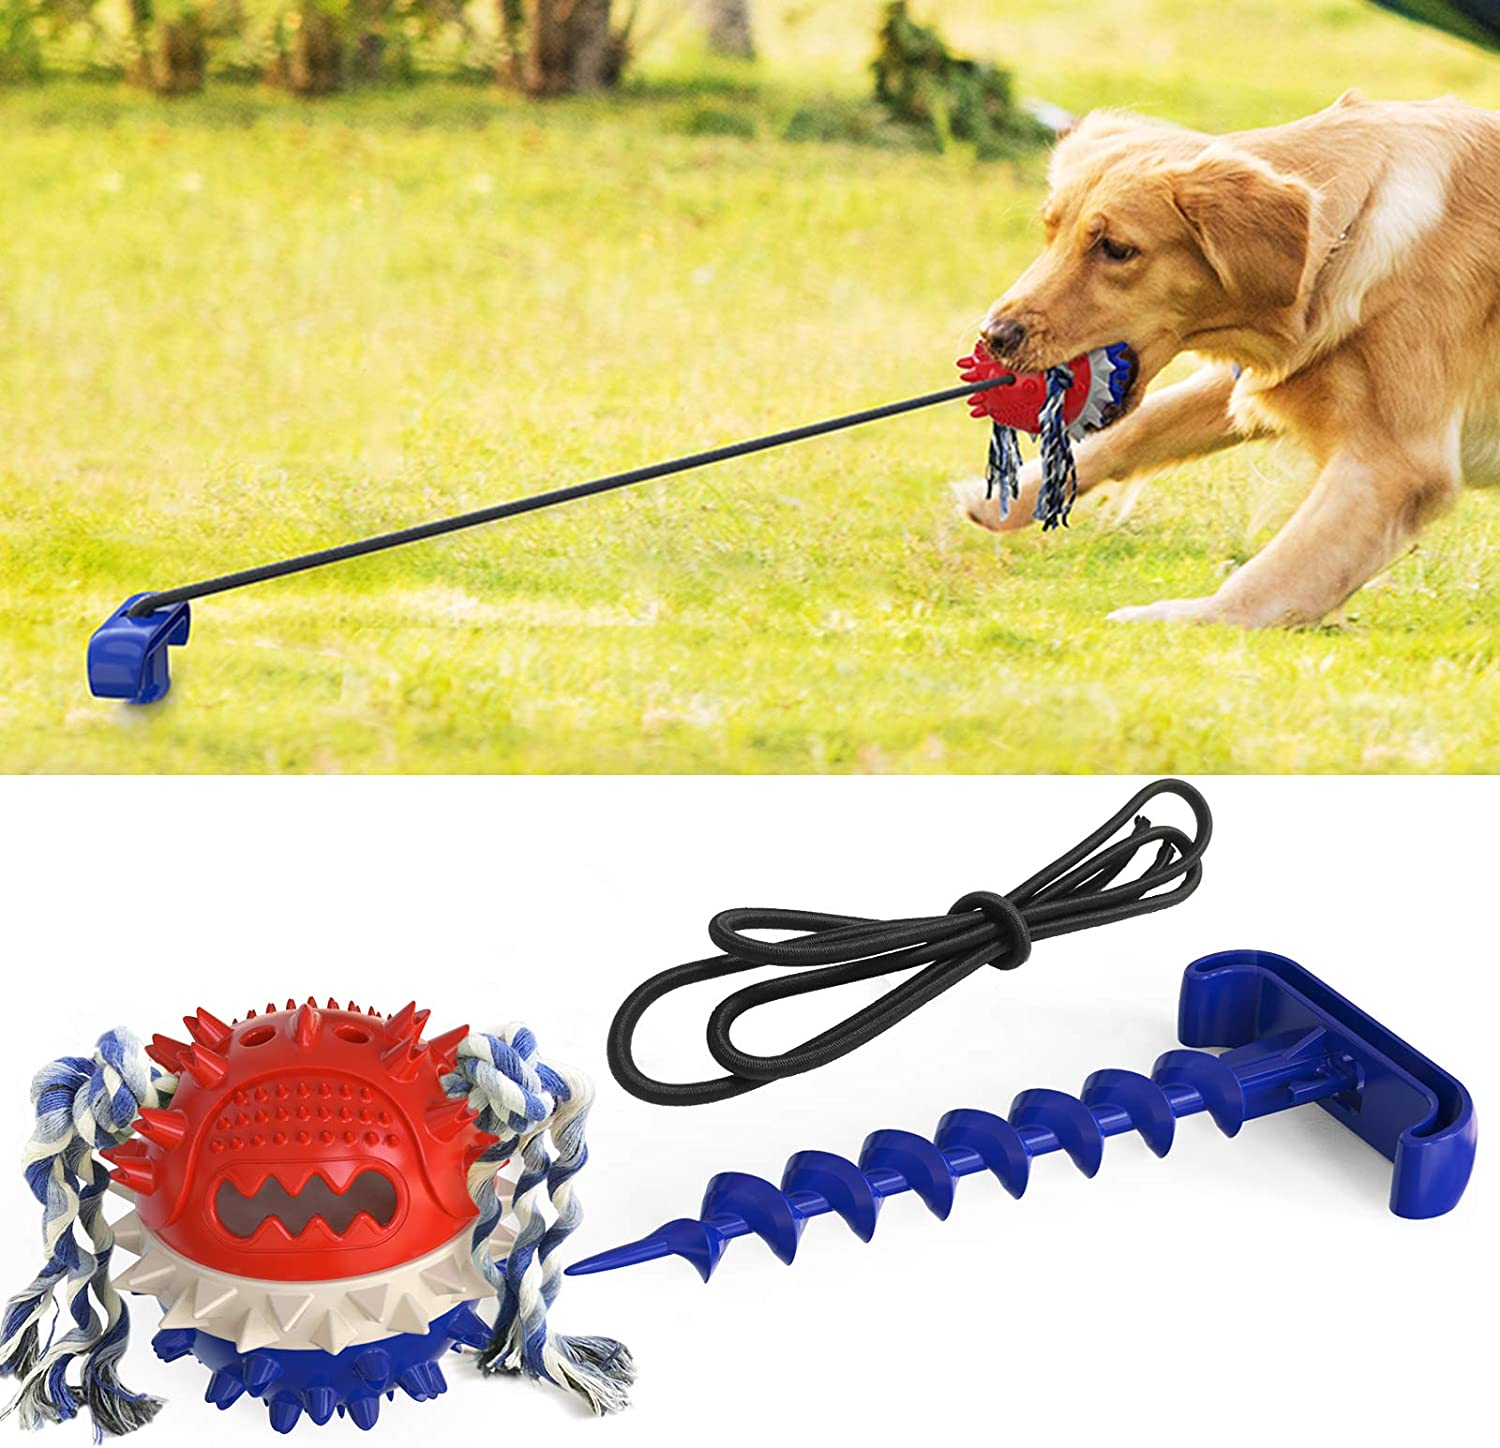 XIAOGO Upgraded Dog Tug Max 78% OFF Suction Cup Toy Toys El Paso Mall Supp Puppy Dogs